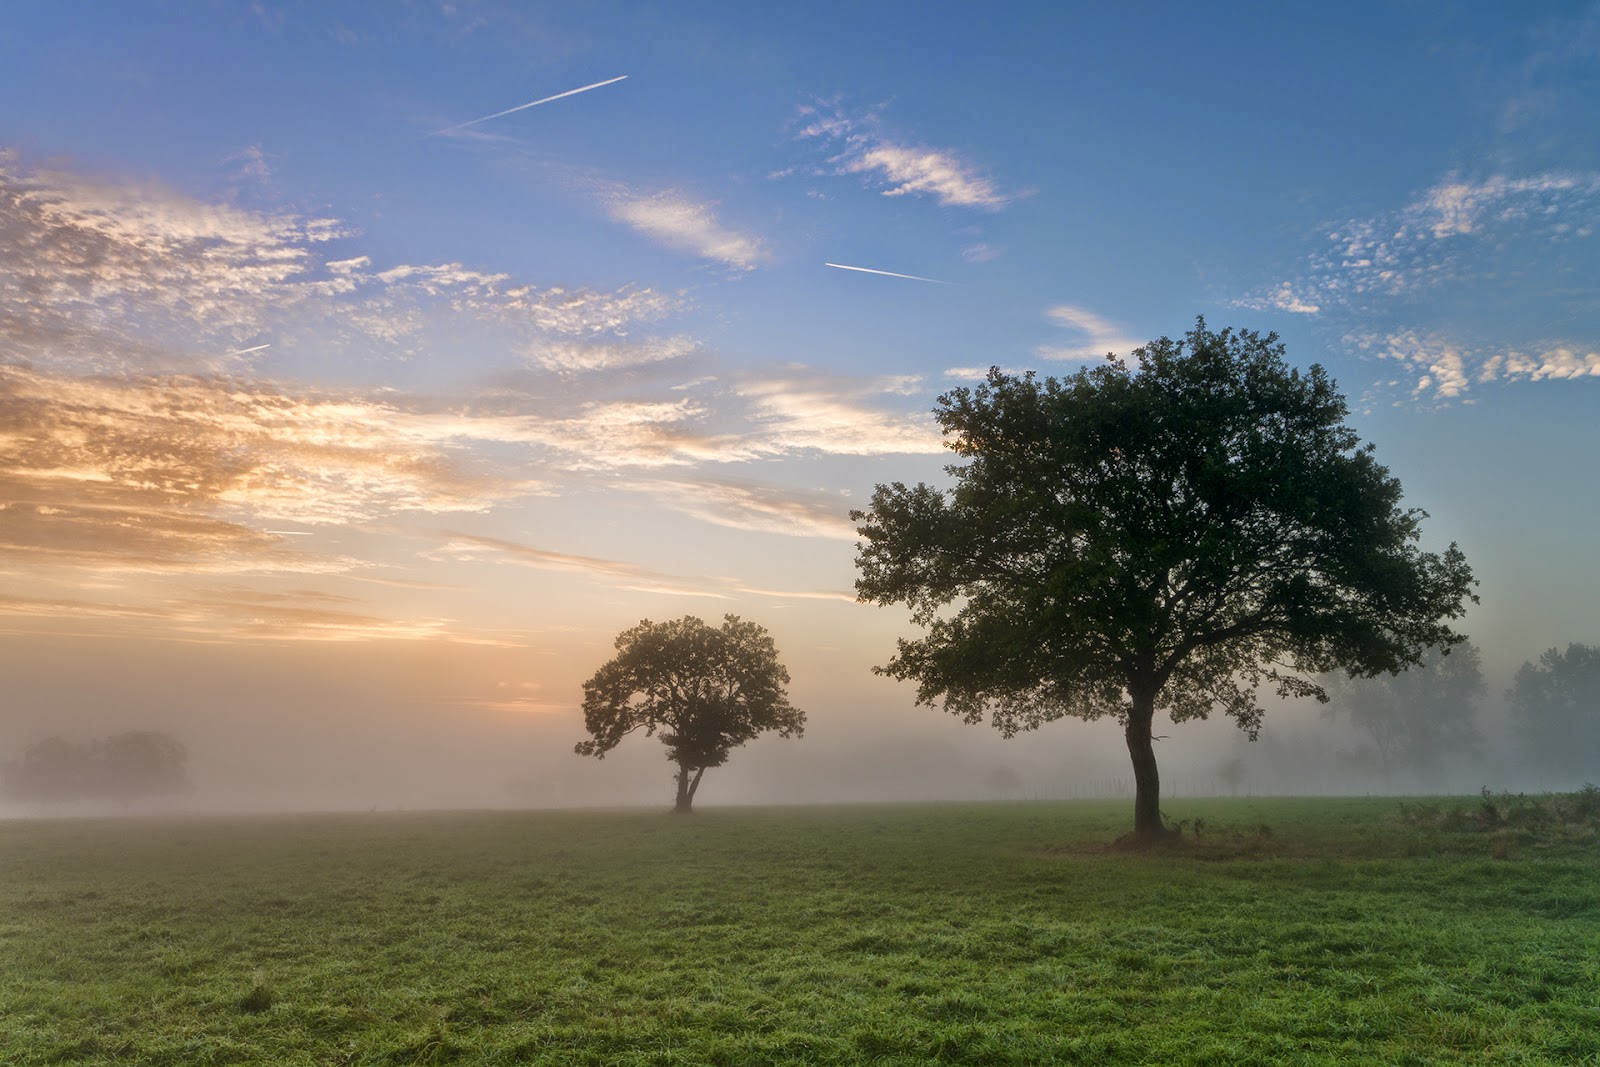 Misty Trees By James Whitesmith | Two Trees In A Field Surrounded By Mist